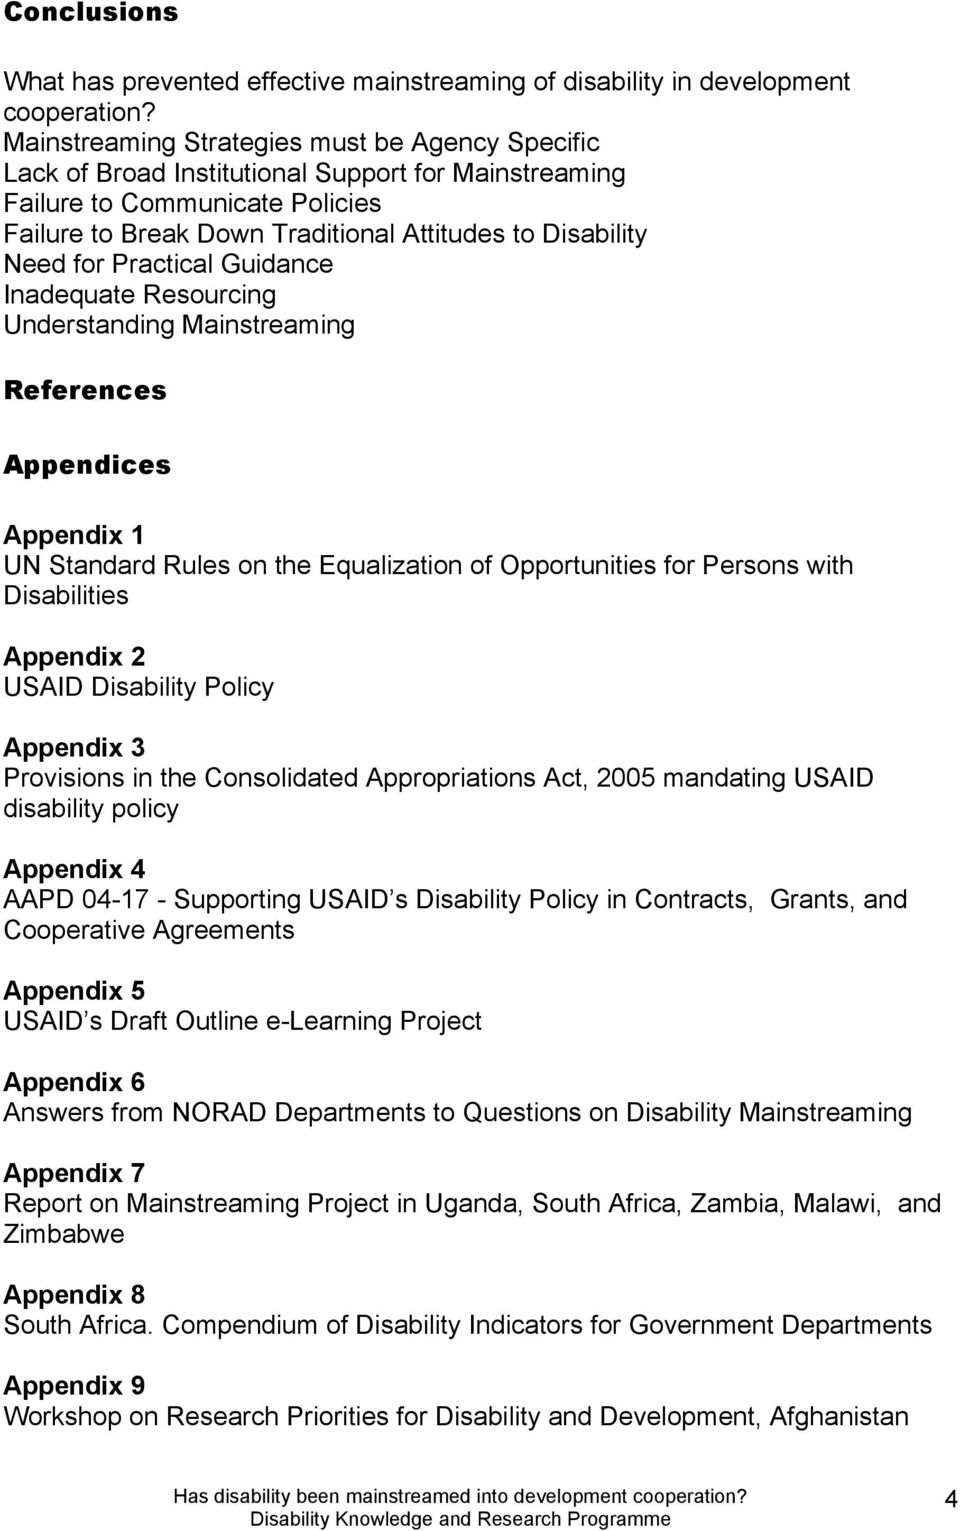 for Practical Guidance Inadequate Resourcing Understanding Mainstreaming References Appendices Appendix 1 UN Standard Rules on the Equalization of Opportunities for Persons with Disabilities Appendix